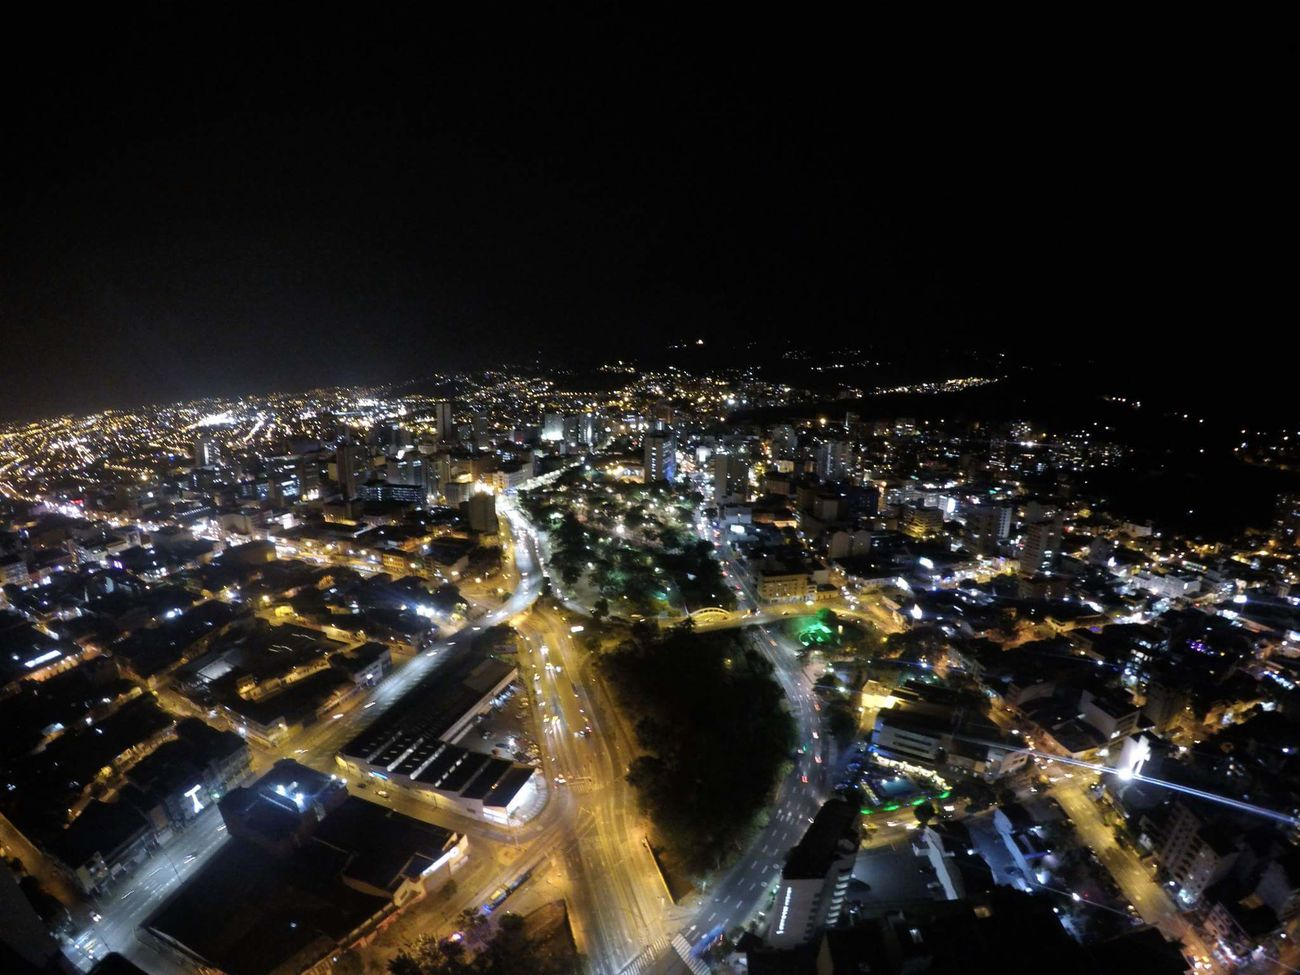 First Eyeem Photo City Cityscapes Calico Streetphotography Santiago De Cali Urban Landscape Roof Tops Colombia Gopro Goprohero4 Gopro Shots Goprophotography Goprouniverse GoPrography